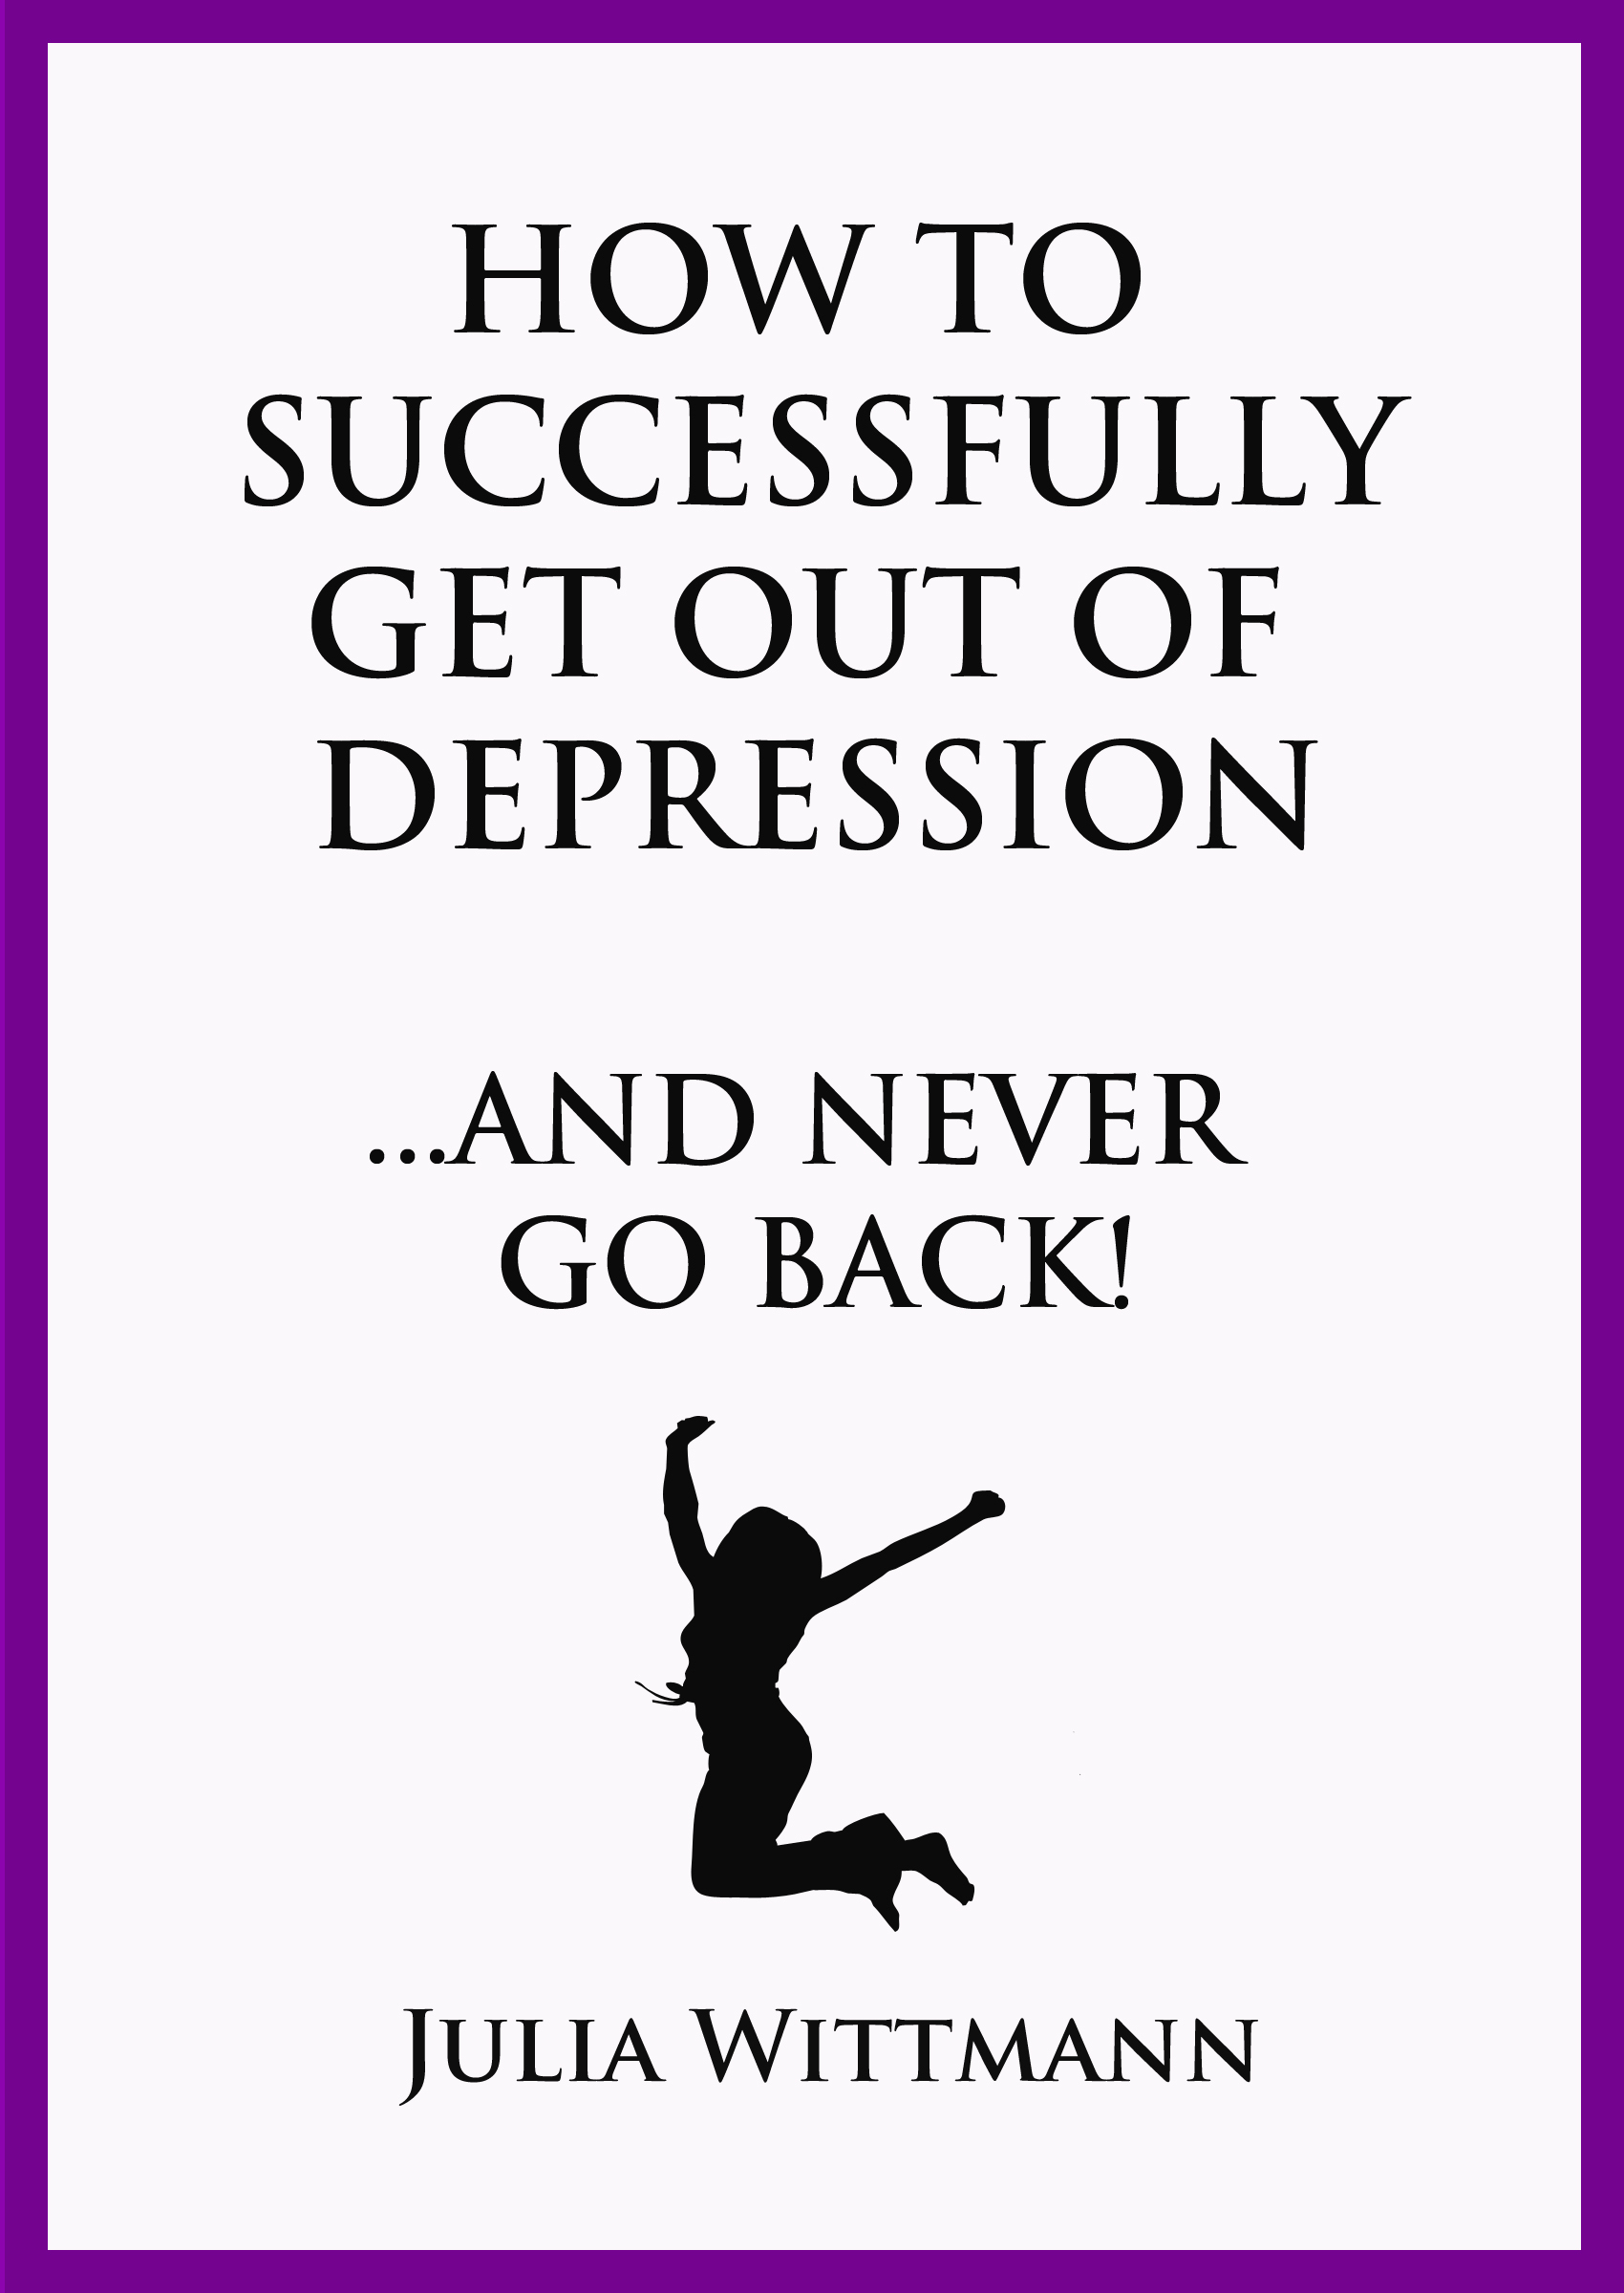 How To Successfully Get Out Of Depression And Never Go Back